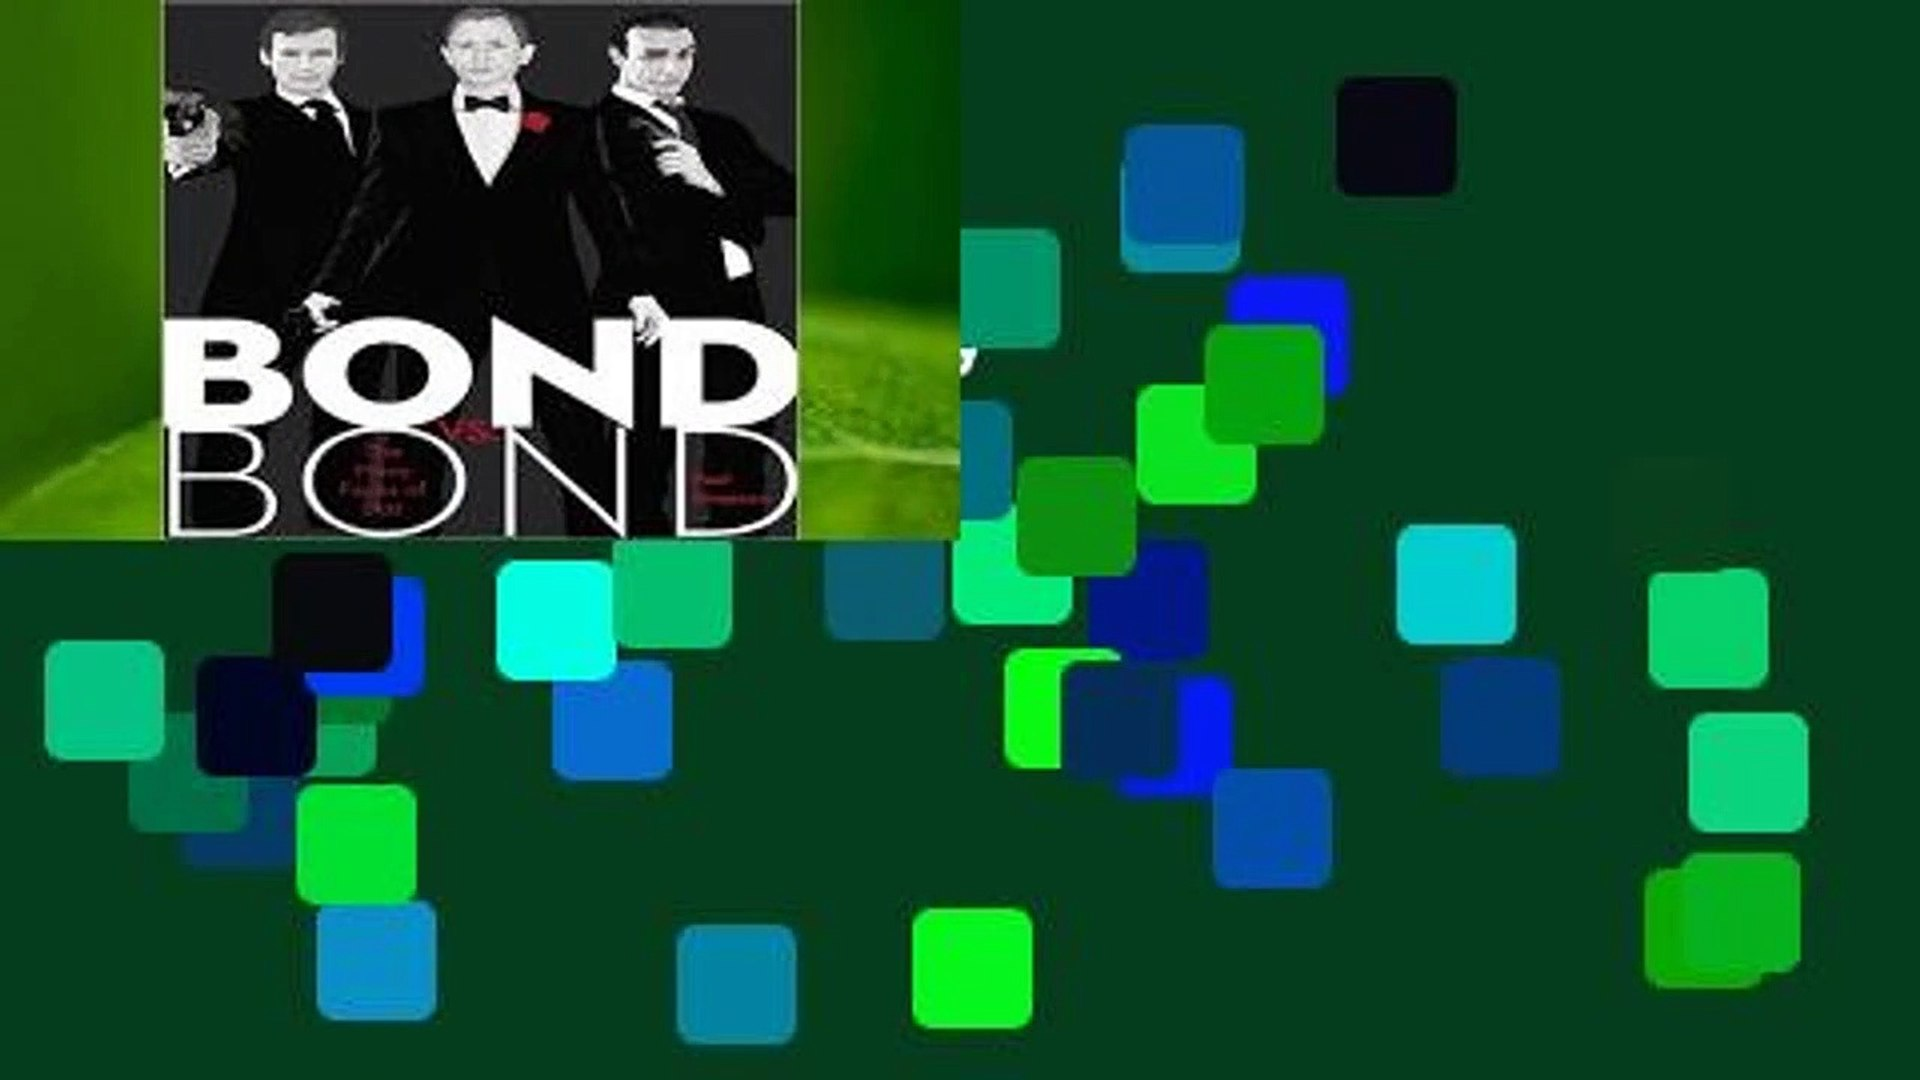 Bond vs. Bond: The Many Faces of 007 Complete